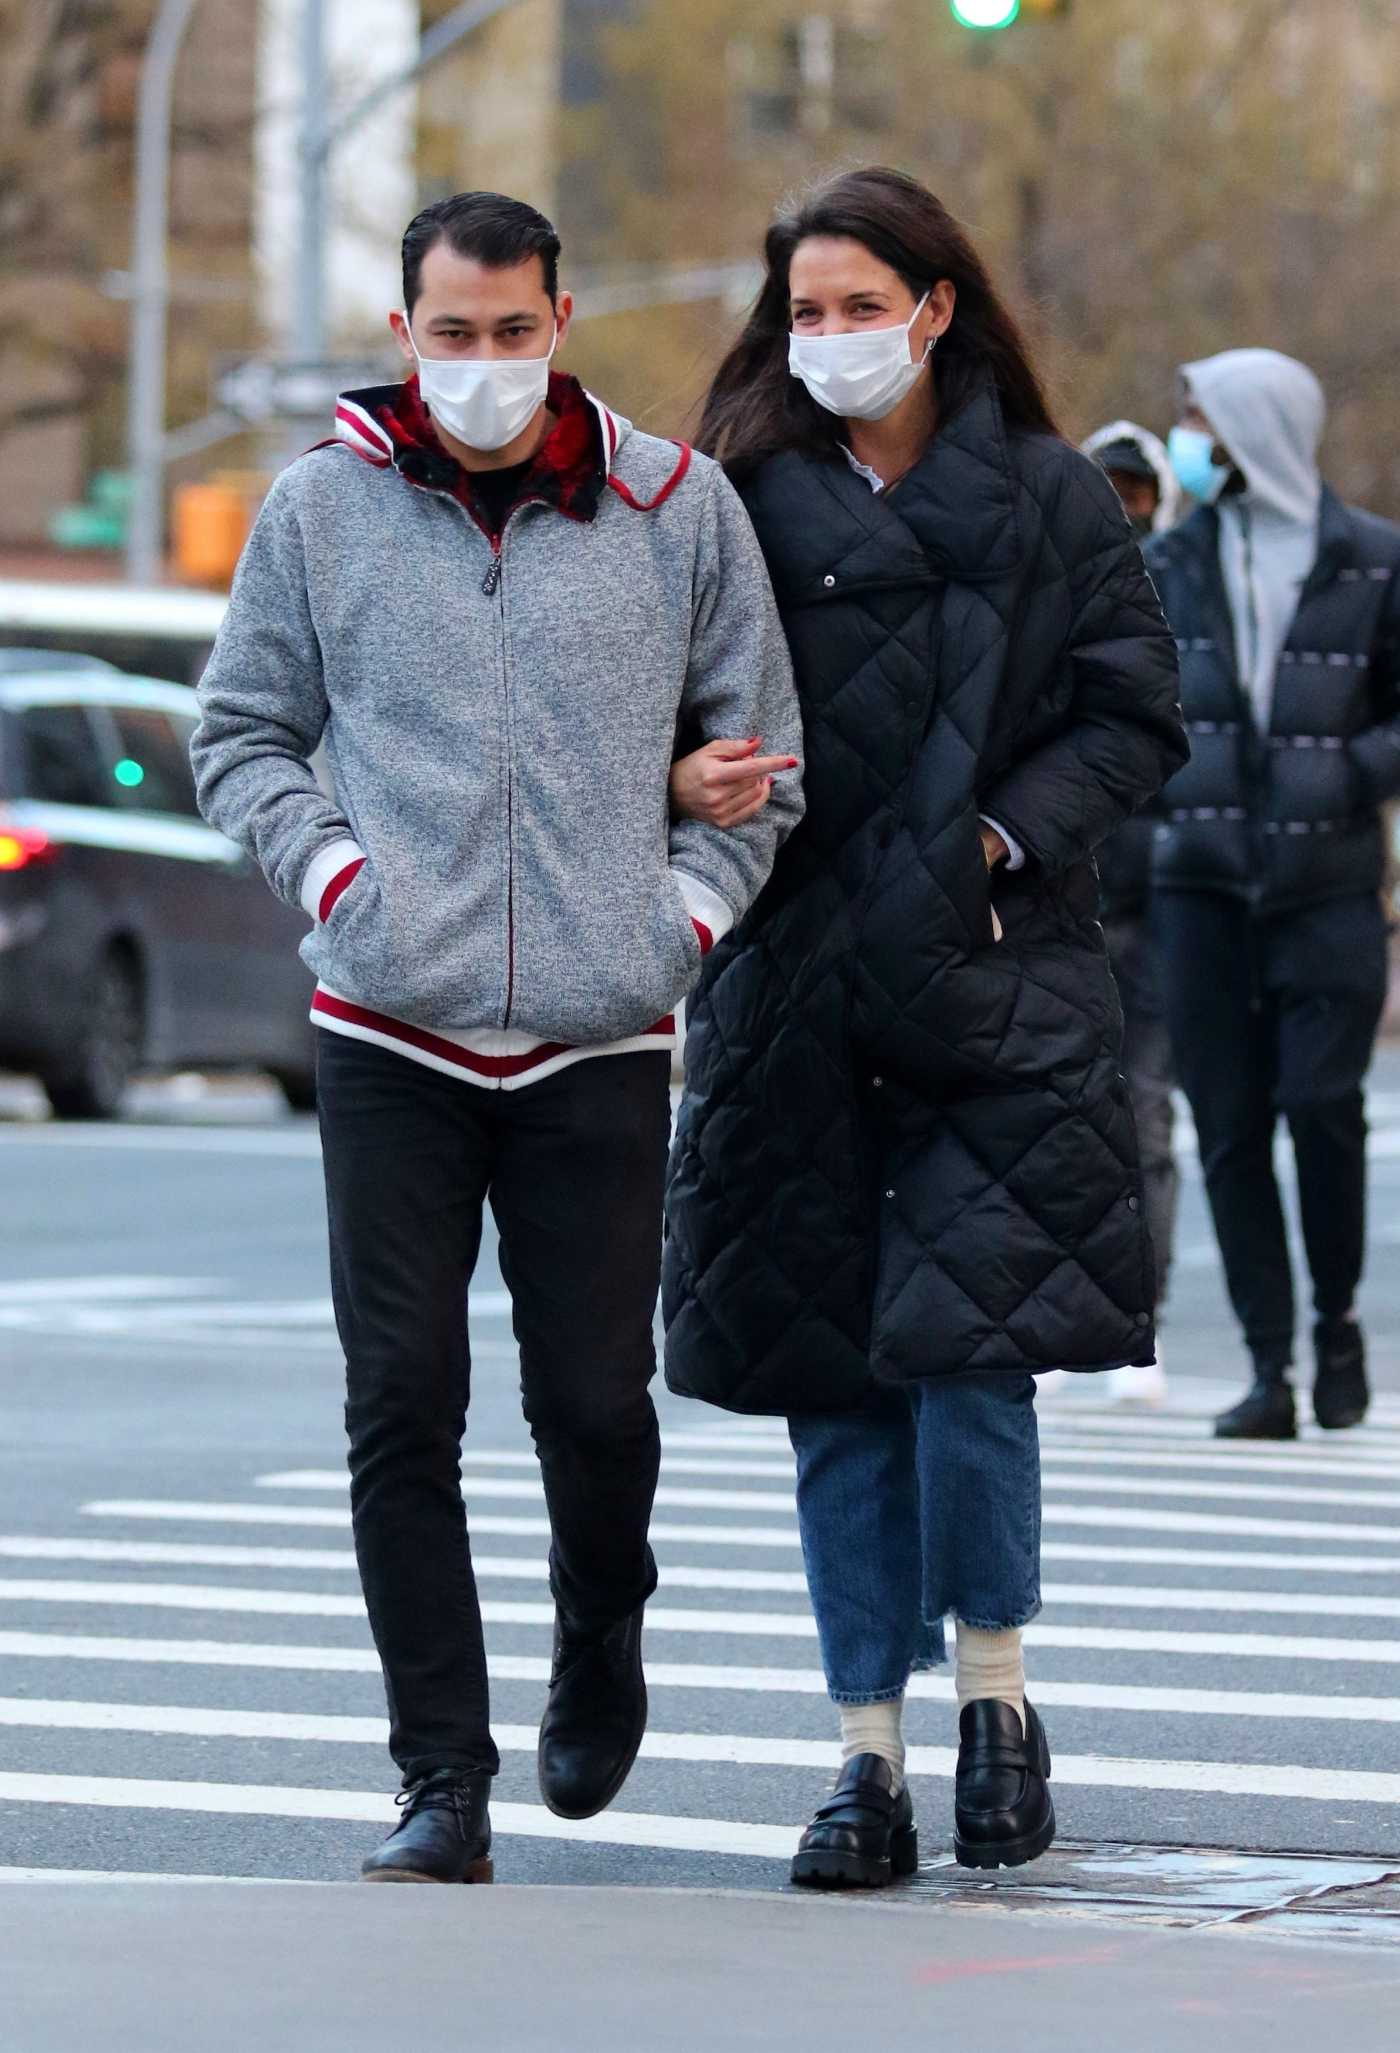 Katie Holmes in a Black Puffer Coat Was Seen Out with Her Boyfriend Emilio Vitolo Jr. in NYC 01/22/2021